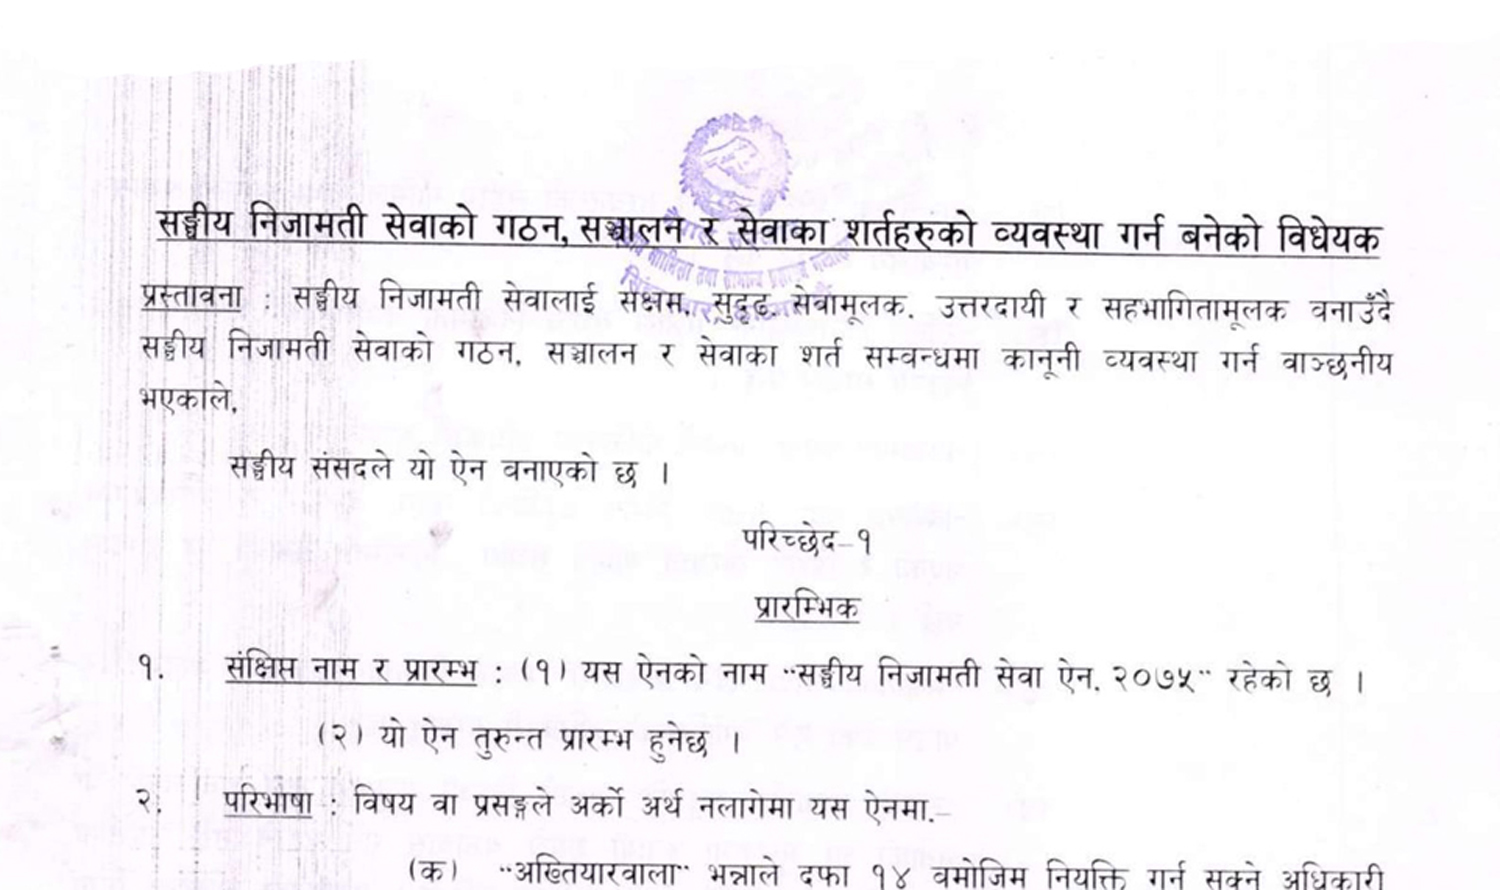 Nijamati-sewa-act Japanese Visa Application Form Download on visa invitation form, tax form, green card form, work permit form, doctor physical examination form, visa ds-160 form sample, nomination form, passport renewal form, travel itinerary form, insurance form, job search form, visa application letter, visa documents folder, visa passport, invitation letter form,